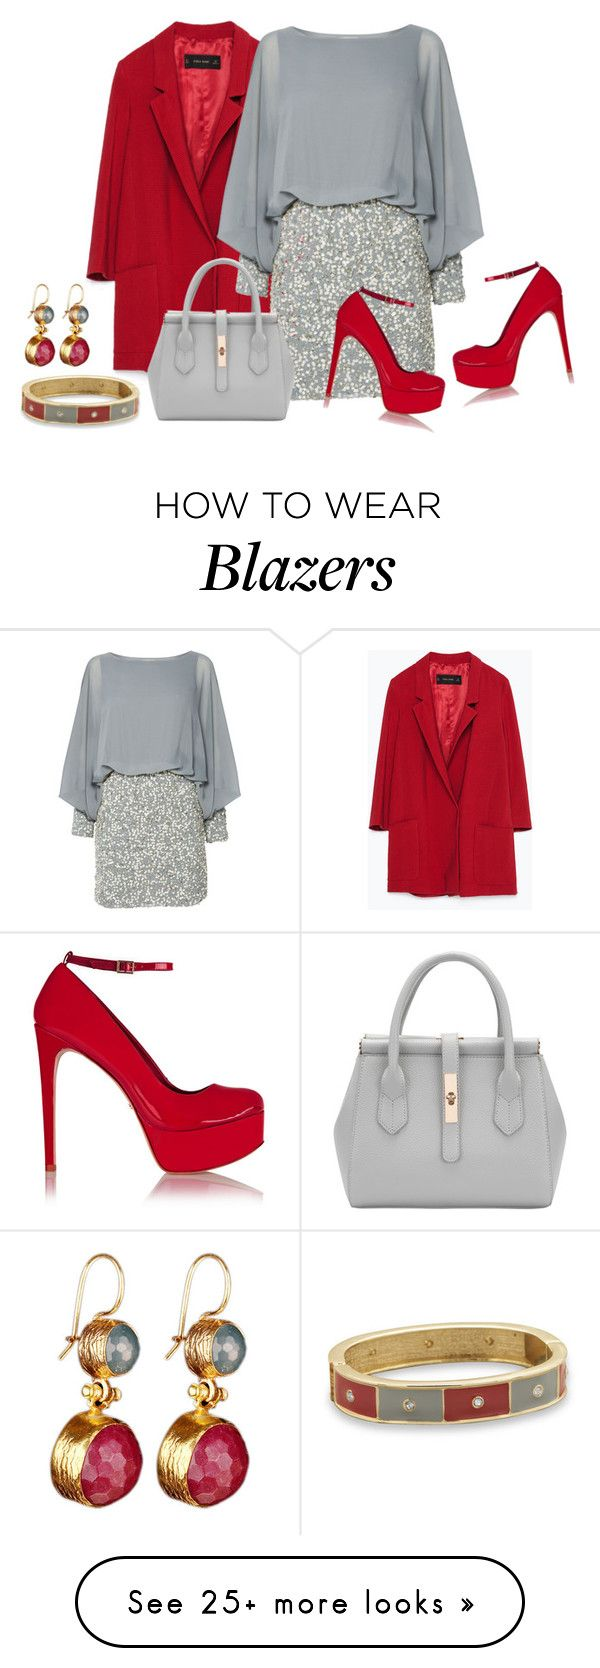 """""""Red And Grey"""" by sjlew on Polyvore featuring Zara, Lace & Beads, Schutz, BillyTheTree, women's clothing, women, female, woman, misses and juniors"""